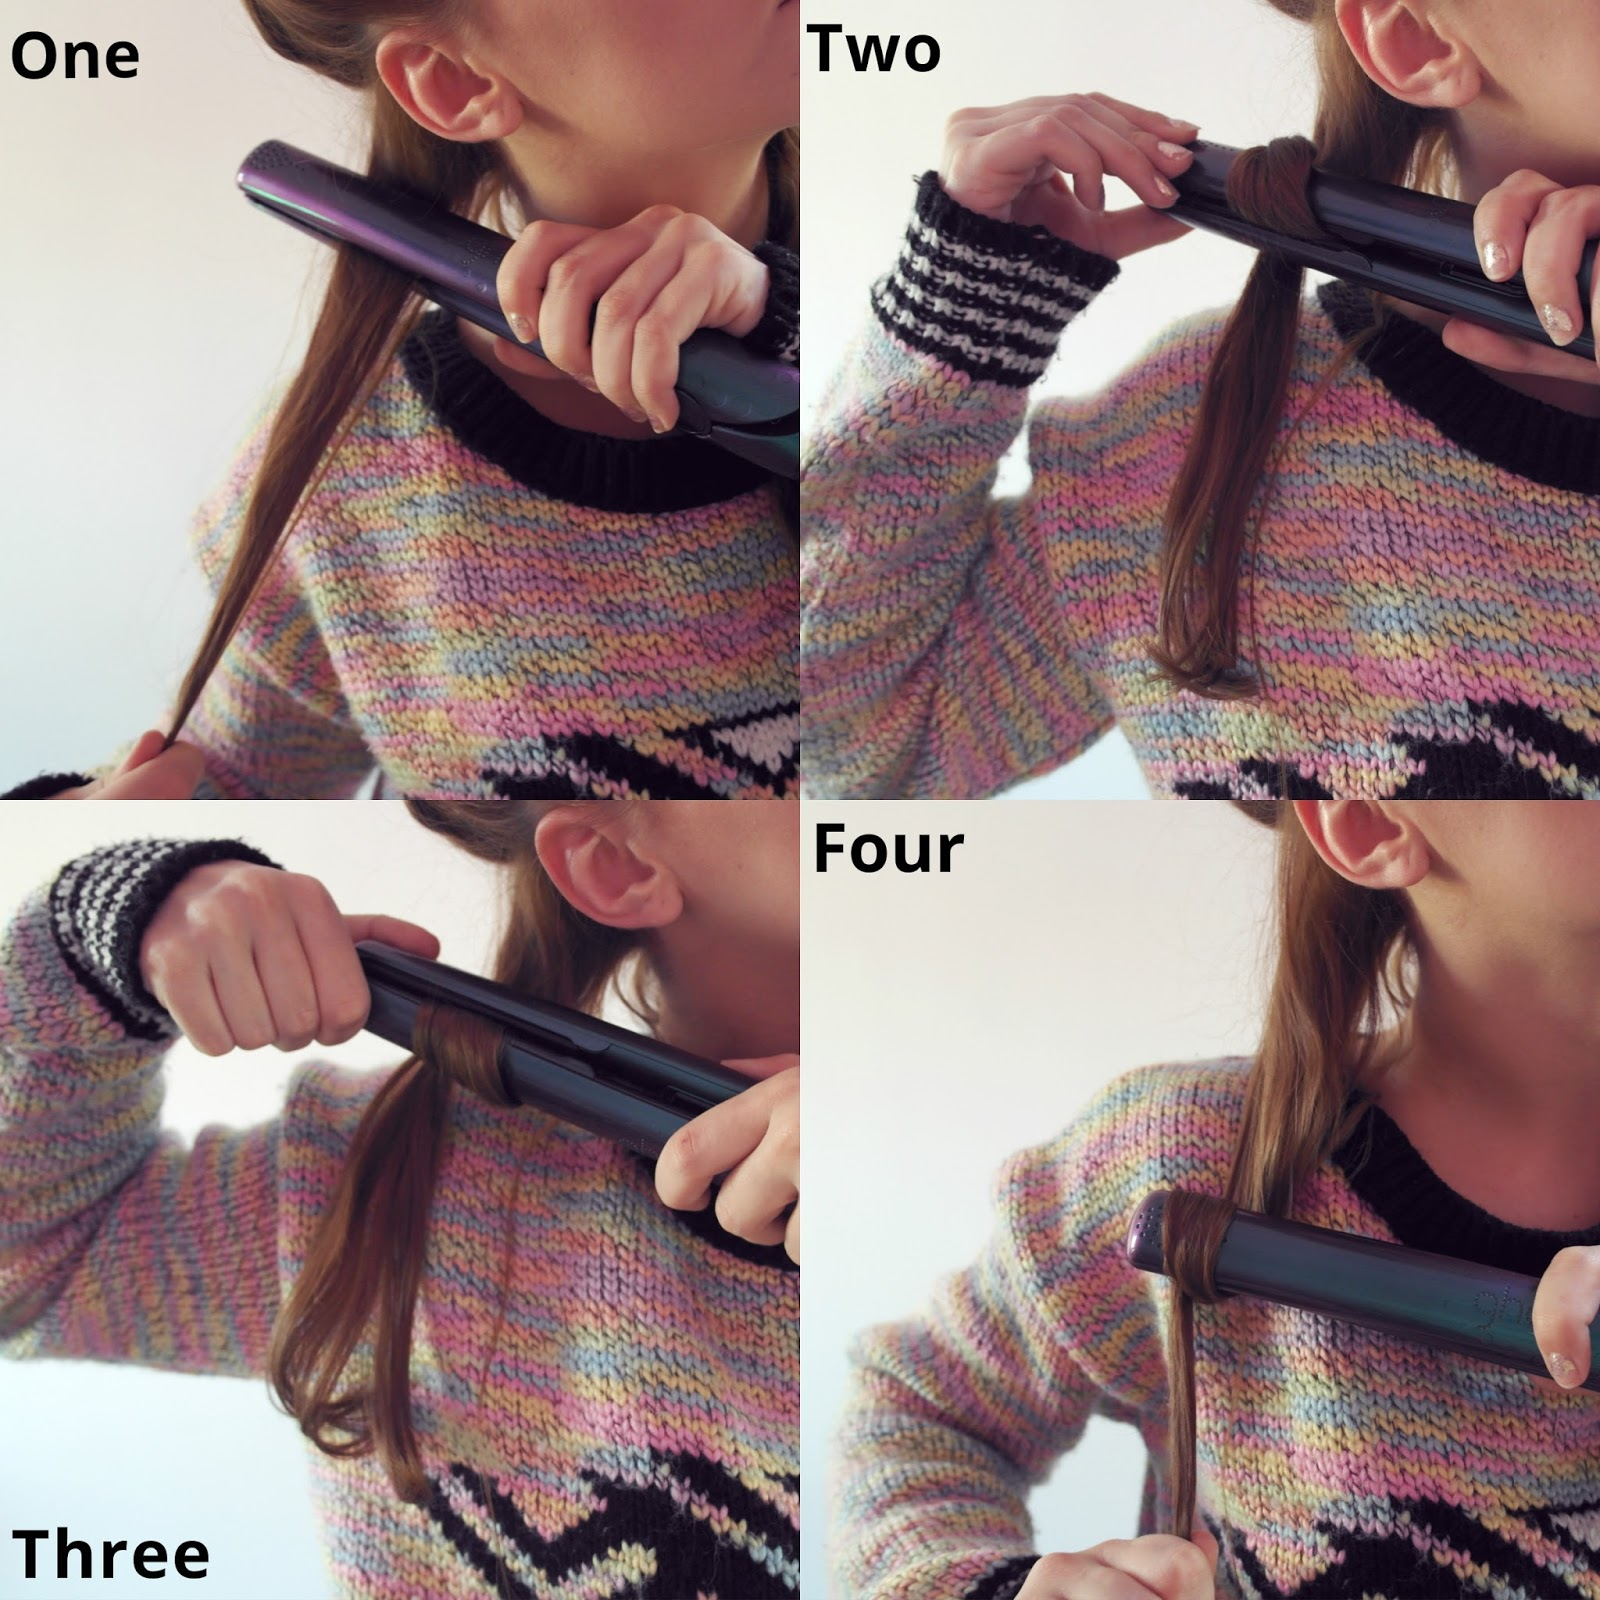 Hair Care Ghd V Wonderland Styler Amp Creating Curls